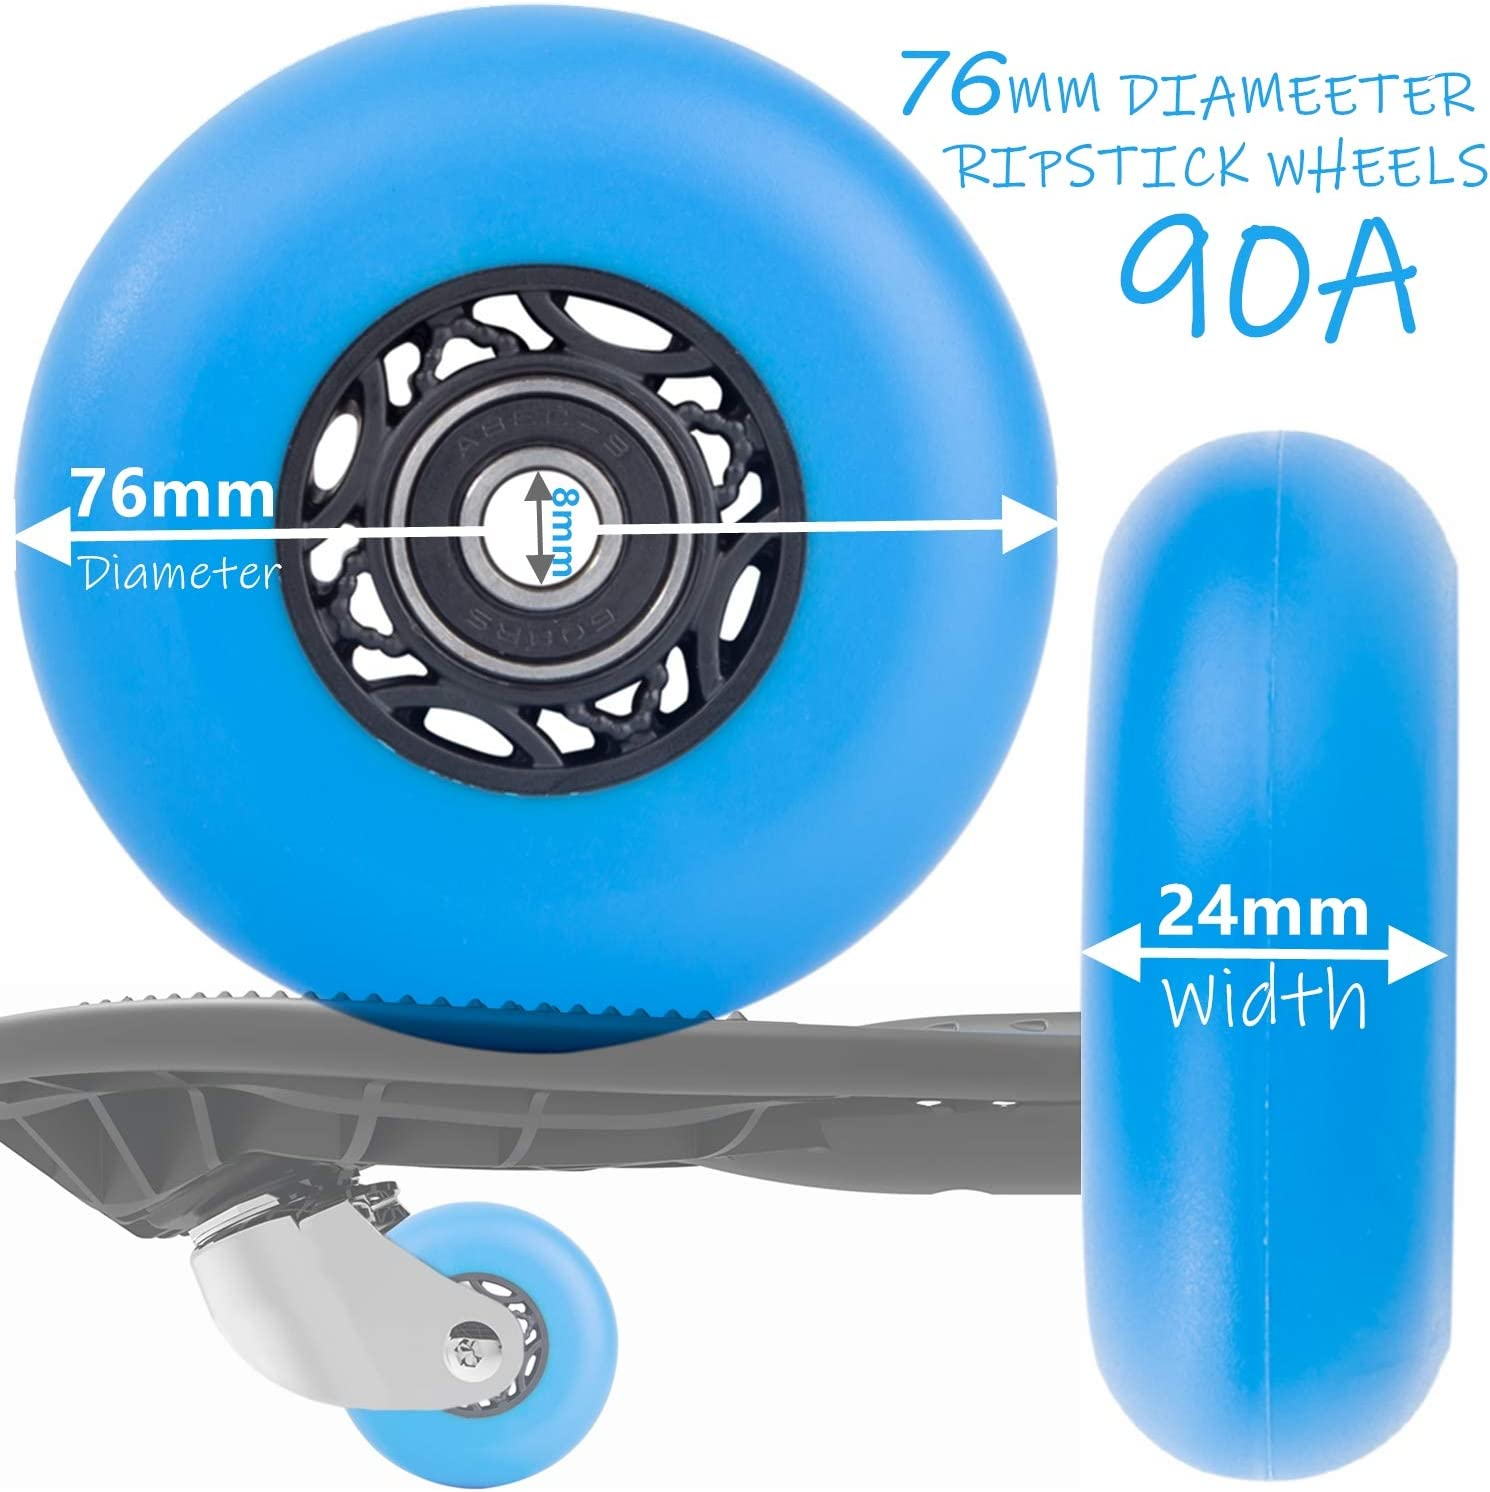 AOWESM 2 PCS RipStik Wheels 76mm Ripsurf Wheels 68mm Ripster Wheels 90A Ripstick DLX Caster Board Replacement Wheel Set with Bearings ABEC-9